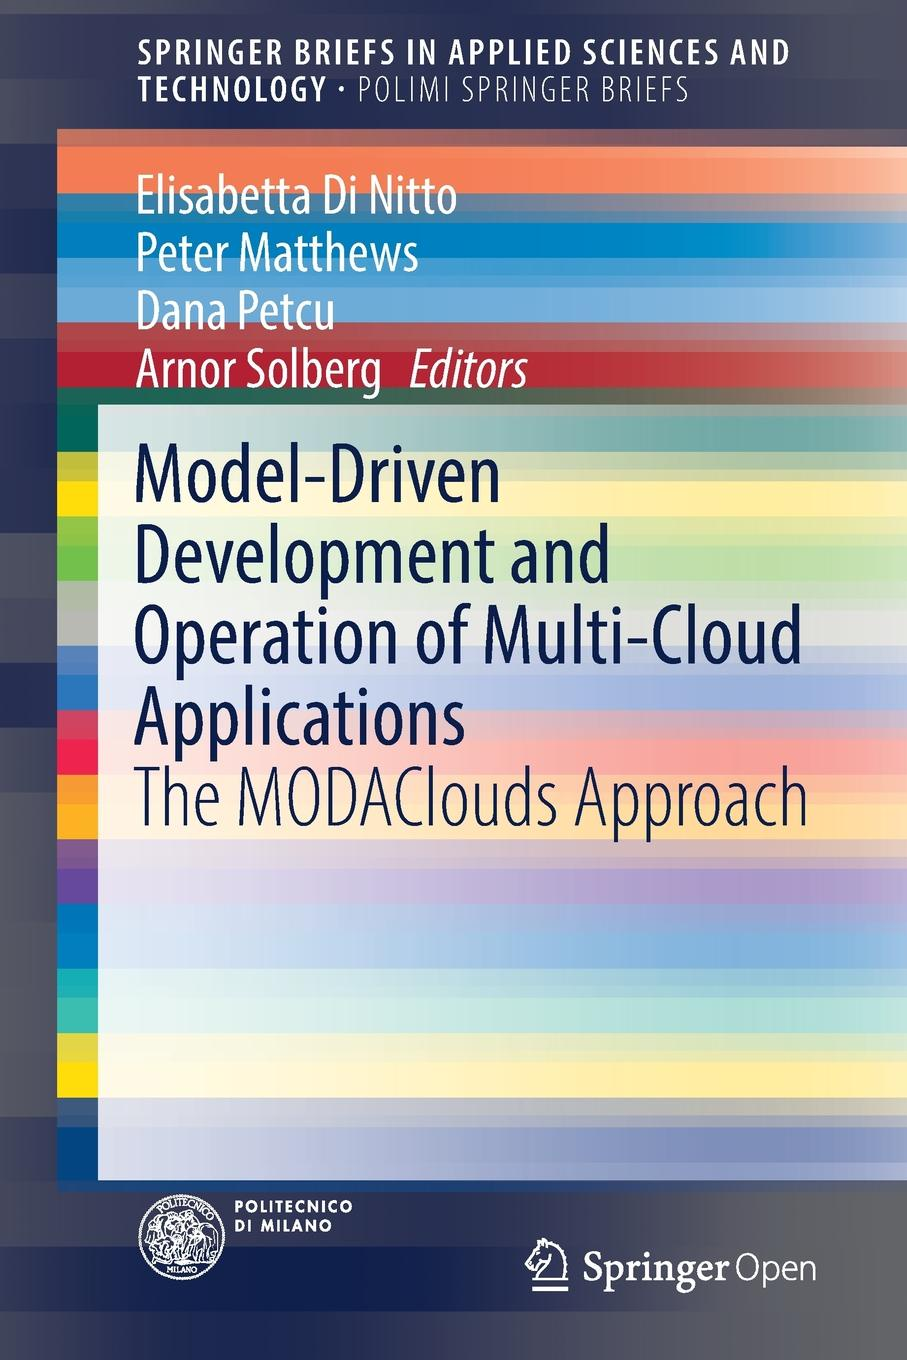 лучшая цена Model-Driven Development and Operation of Multi-Cloud Applications. The MODAClouds Approach